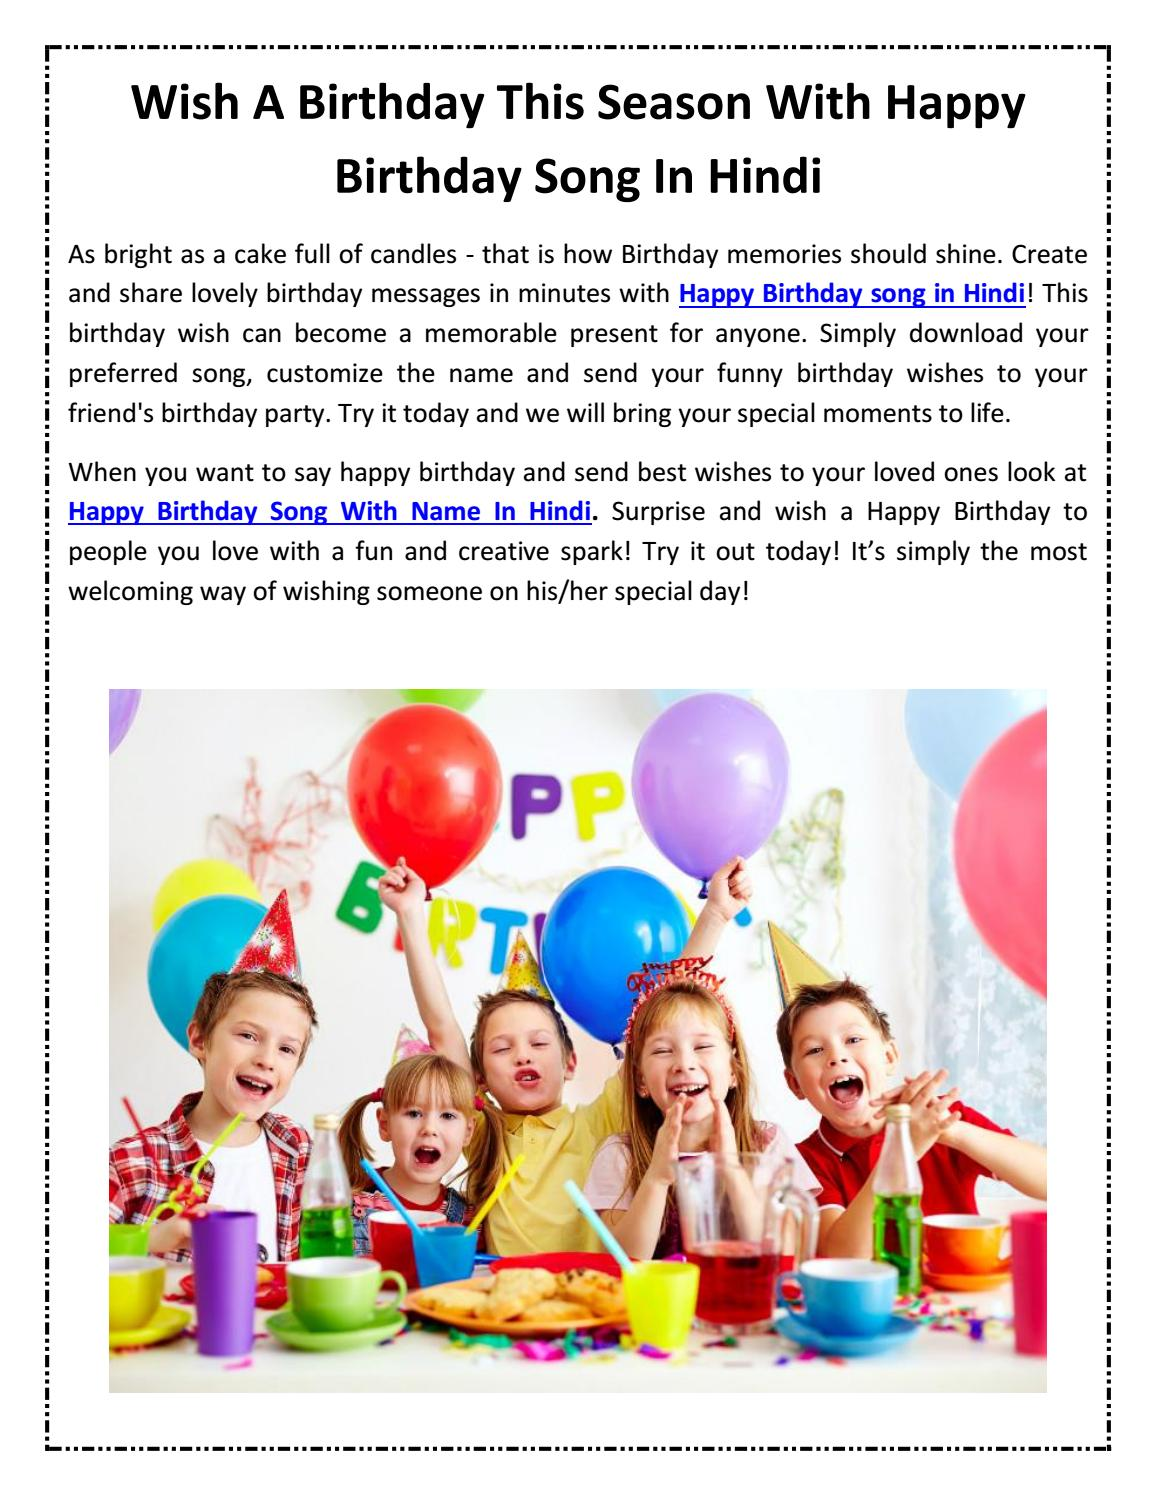 Wish A Birthday This Season With Happy Birthday Song In